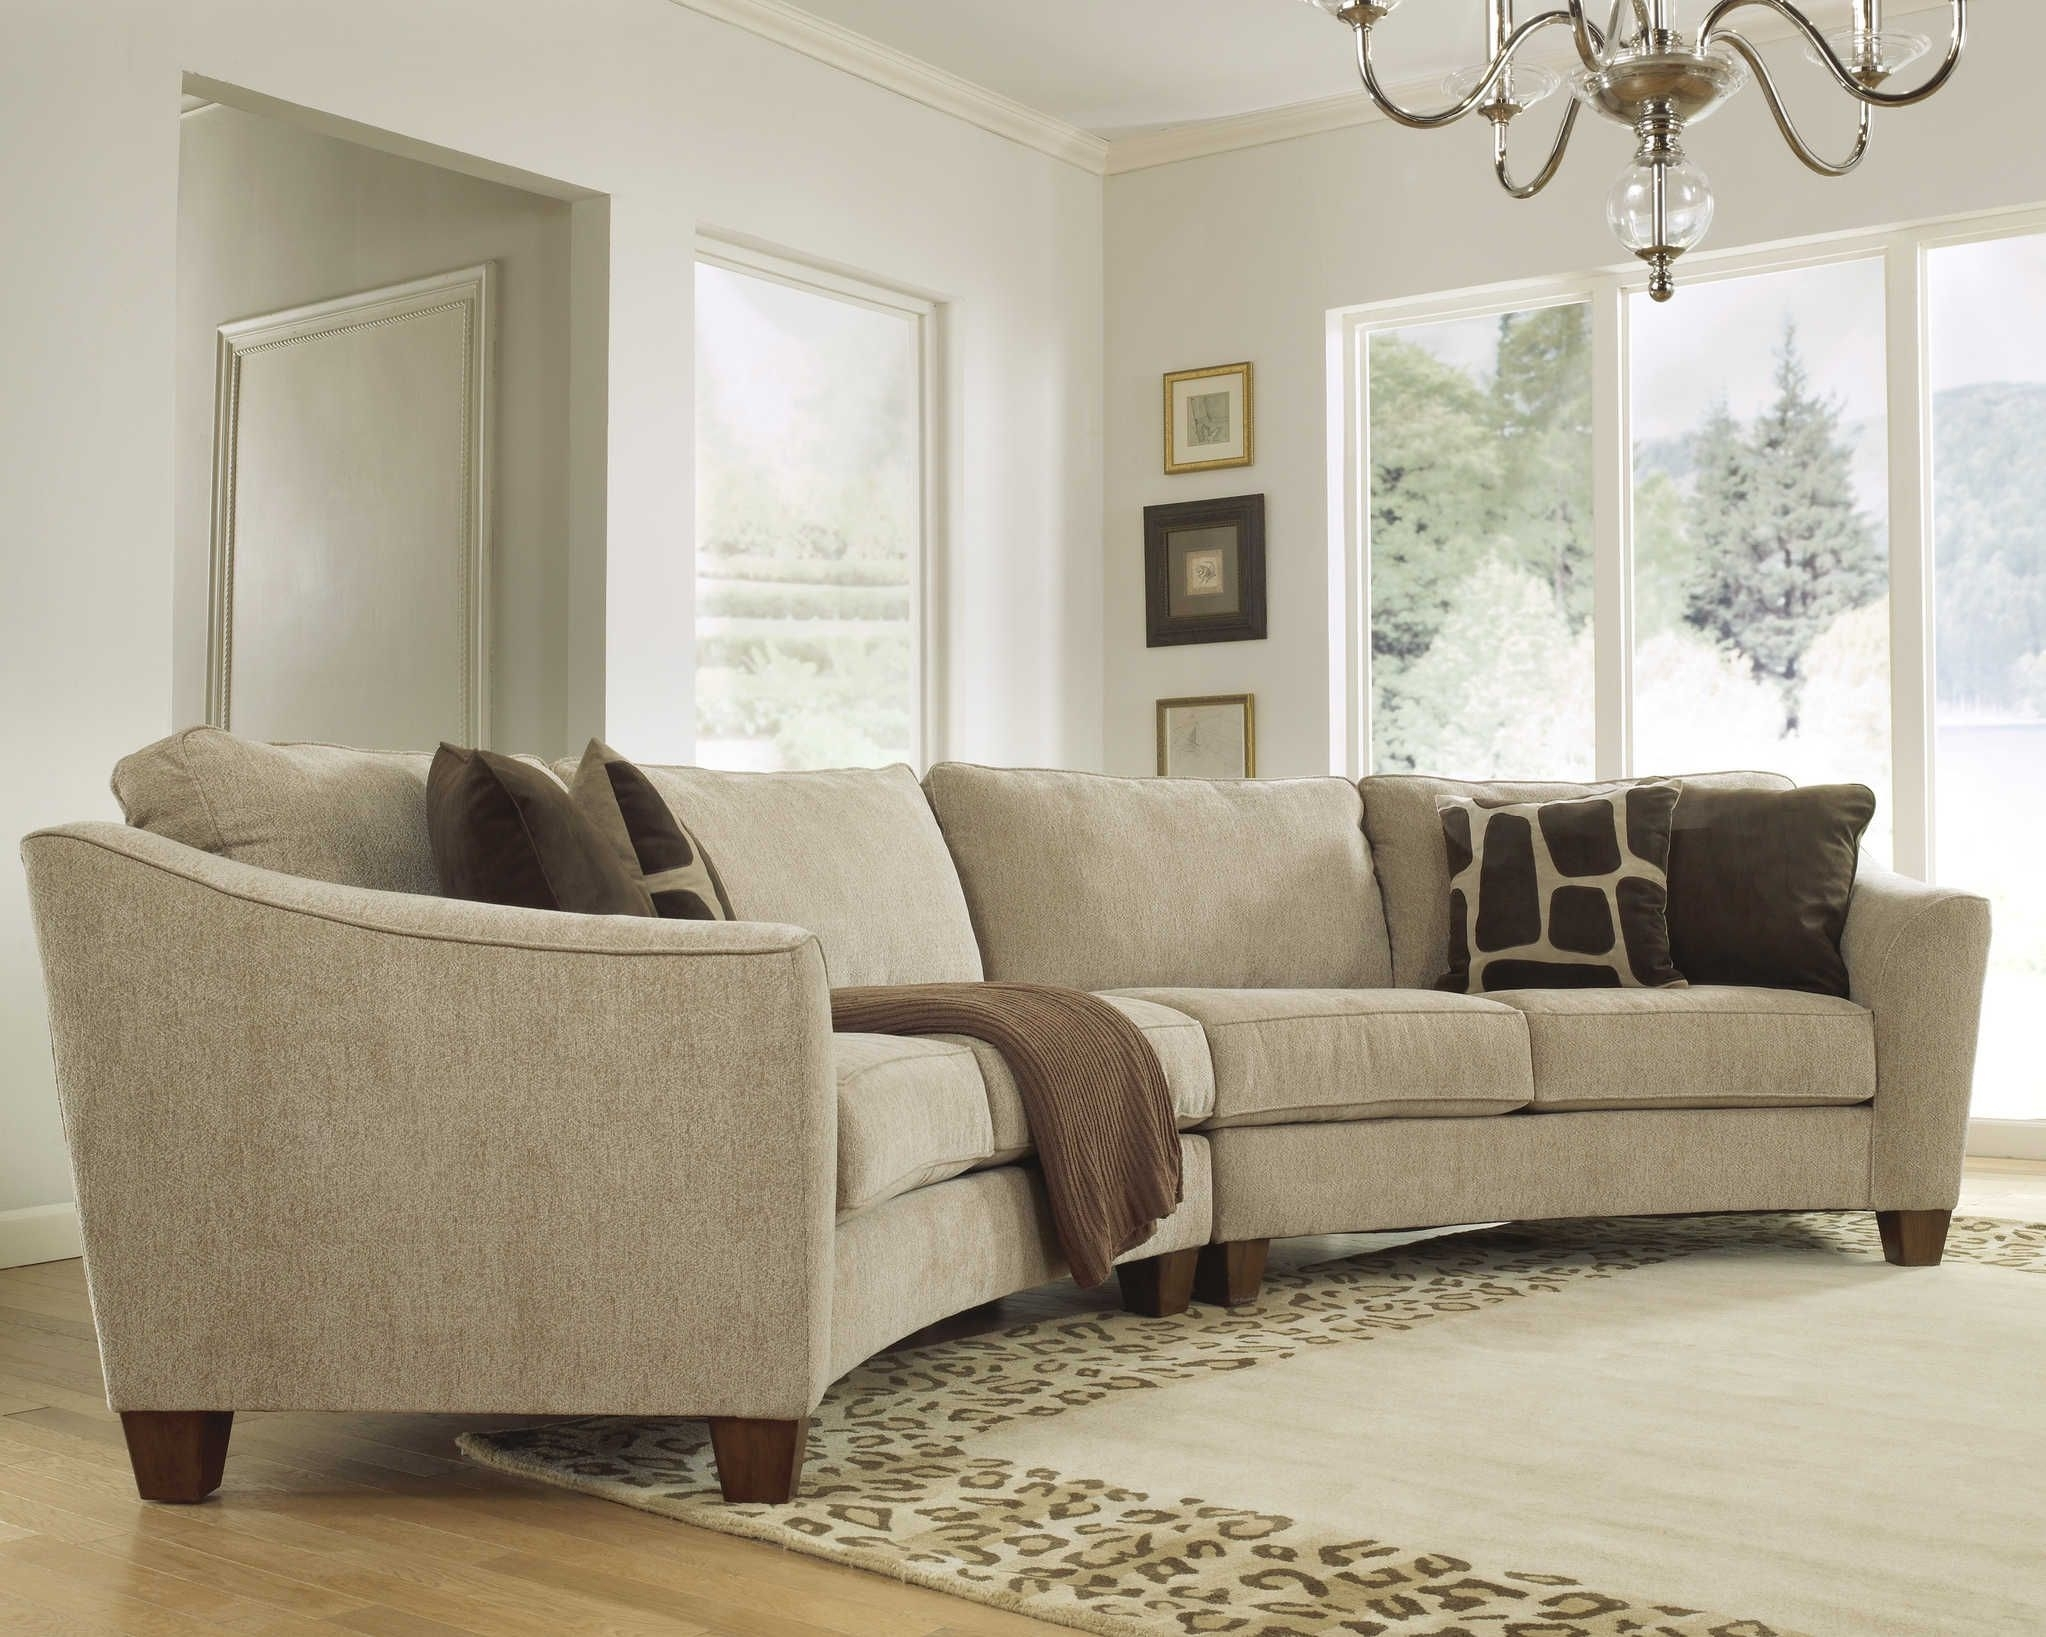 Curved Sectional Sofa Set - Rich Comfortable Upholstered Fabric for Dania Sectional Sofas (Image 3 of 10)